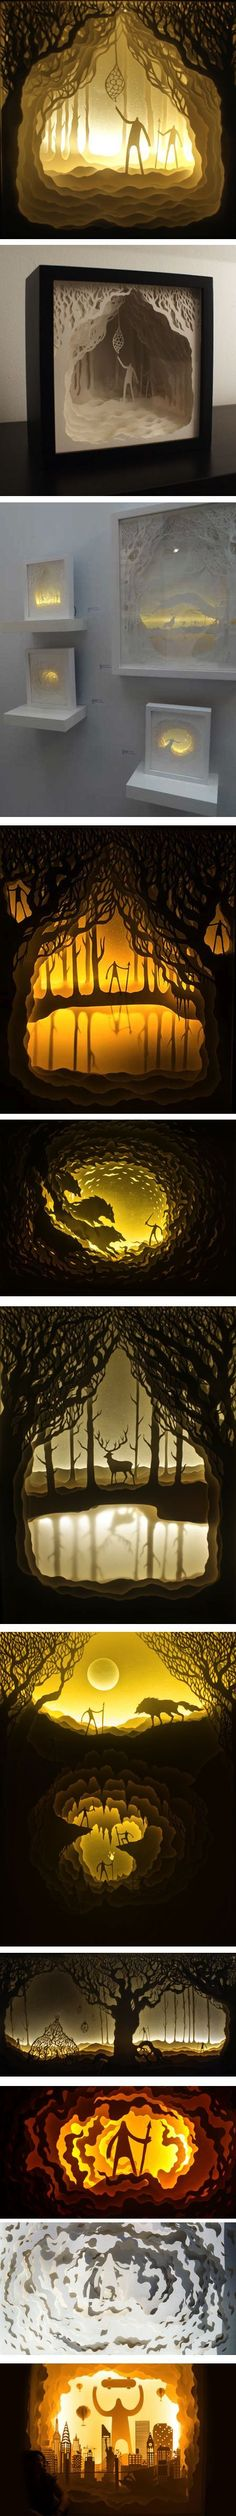 Harikrishnan Panicker and Deepti Nair create cut paper shadow boxes, illuminated with battery powered lights. -This is seriously the coolest.